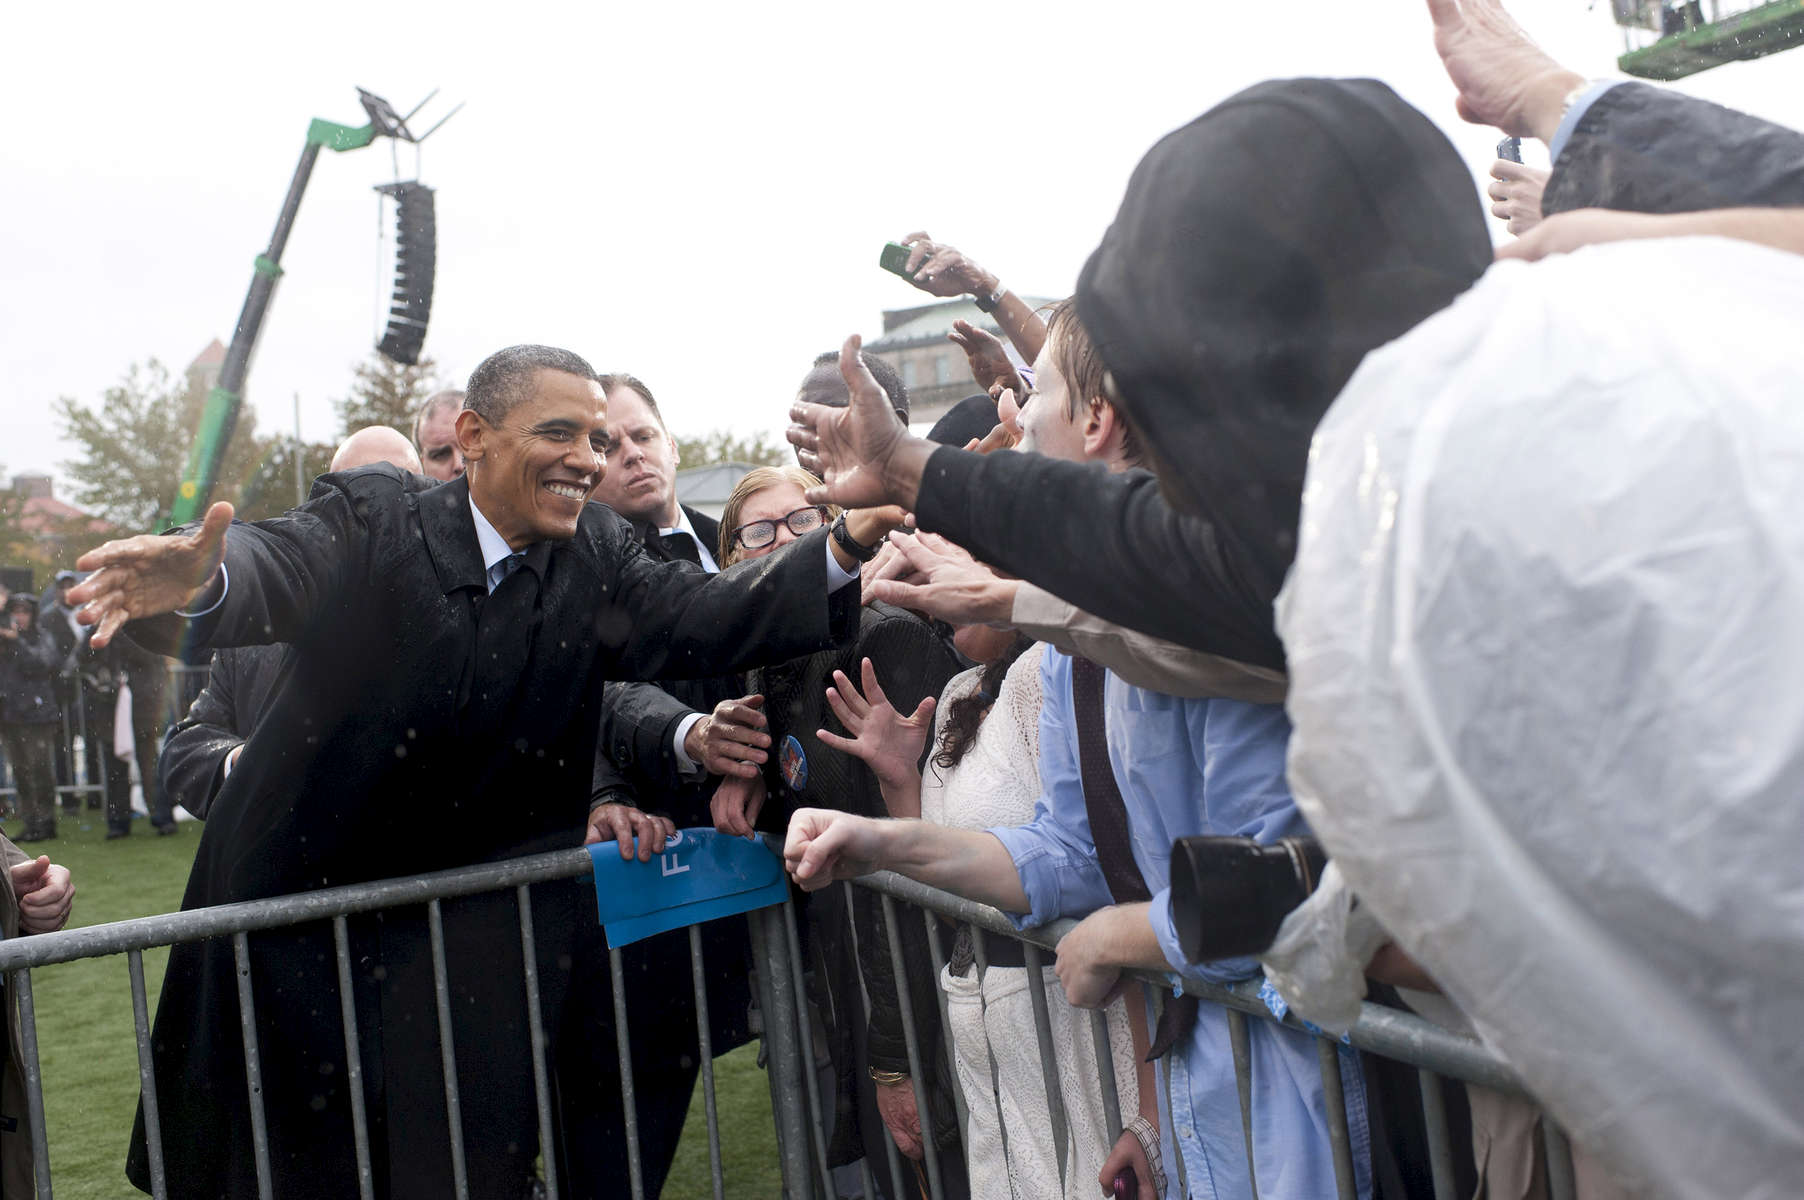 October 5, 2012 - Cleveland, OH- President Barack Obama high-fives a supporter during a rain soaked rally in Cleveland, OH.  (Scout Tufankjian for Obama for America/Polaris)